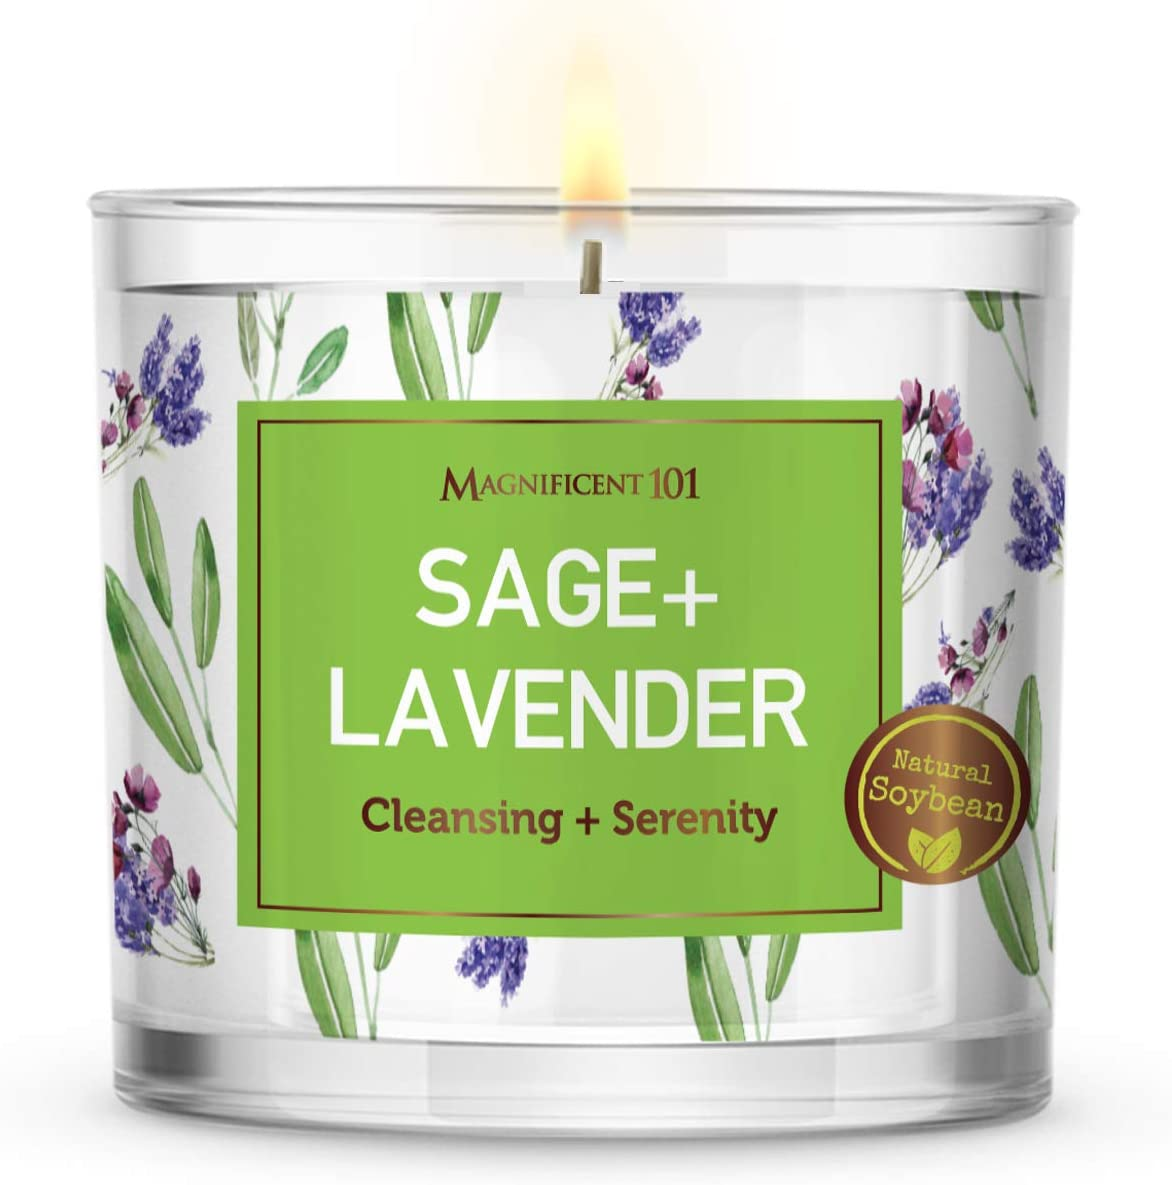 Large Sage + Lavender, Smudge Candle for House Energy Cleansing and Serenity, Banishes Negative Energy I Purification and Chakra Healing - Natural Soy Wax Glass Candle for Aromatherapy (14oz)